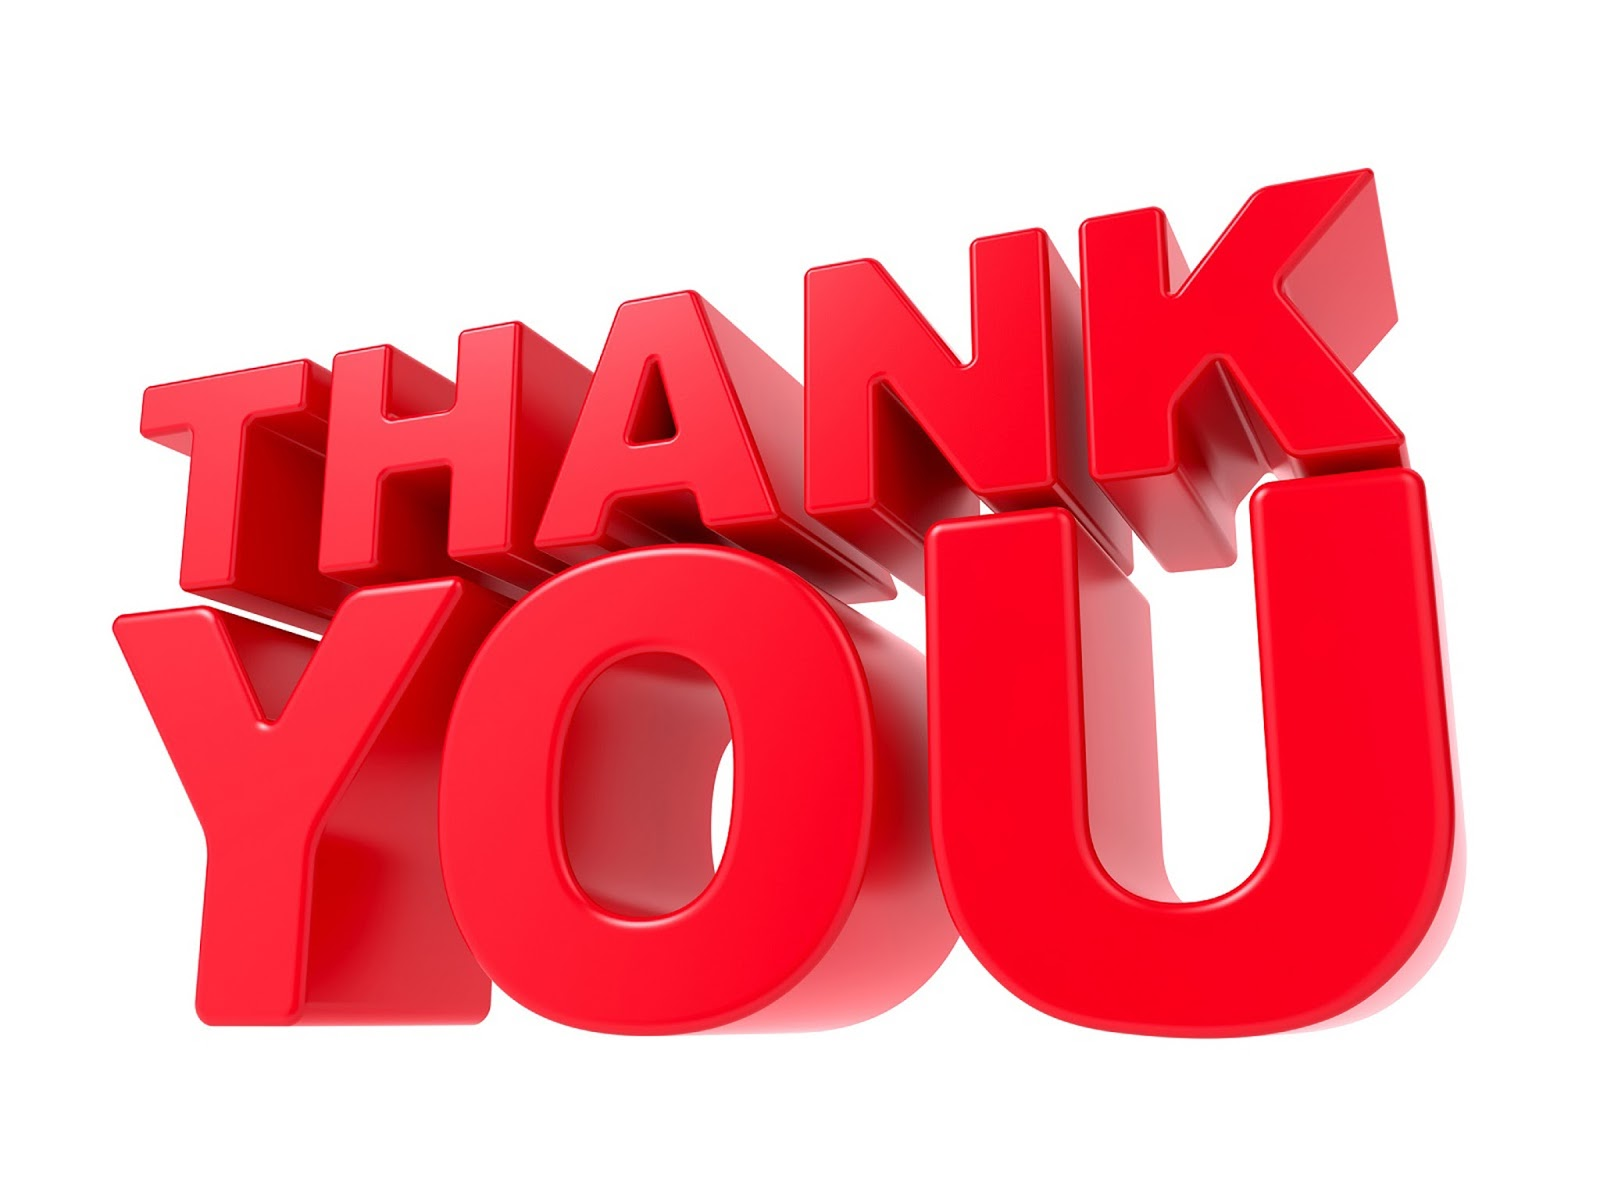 Big Thank You Simple HD Wallpapers Free Download